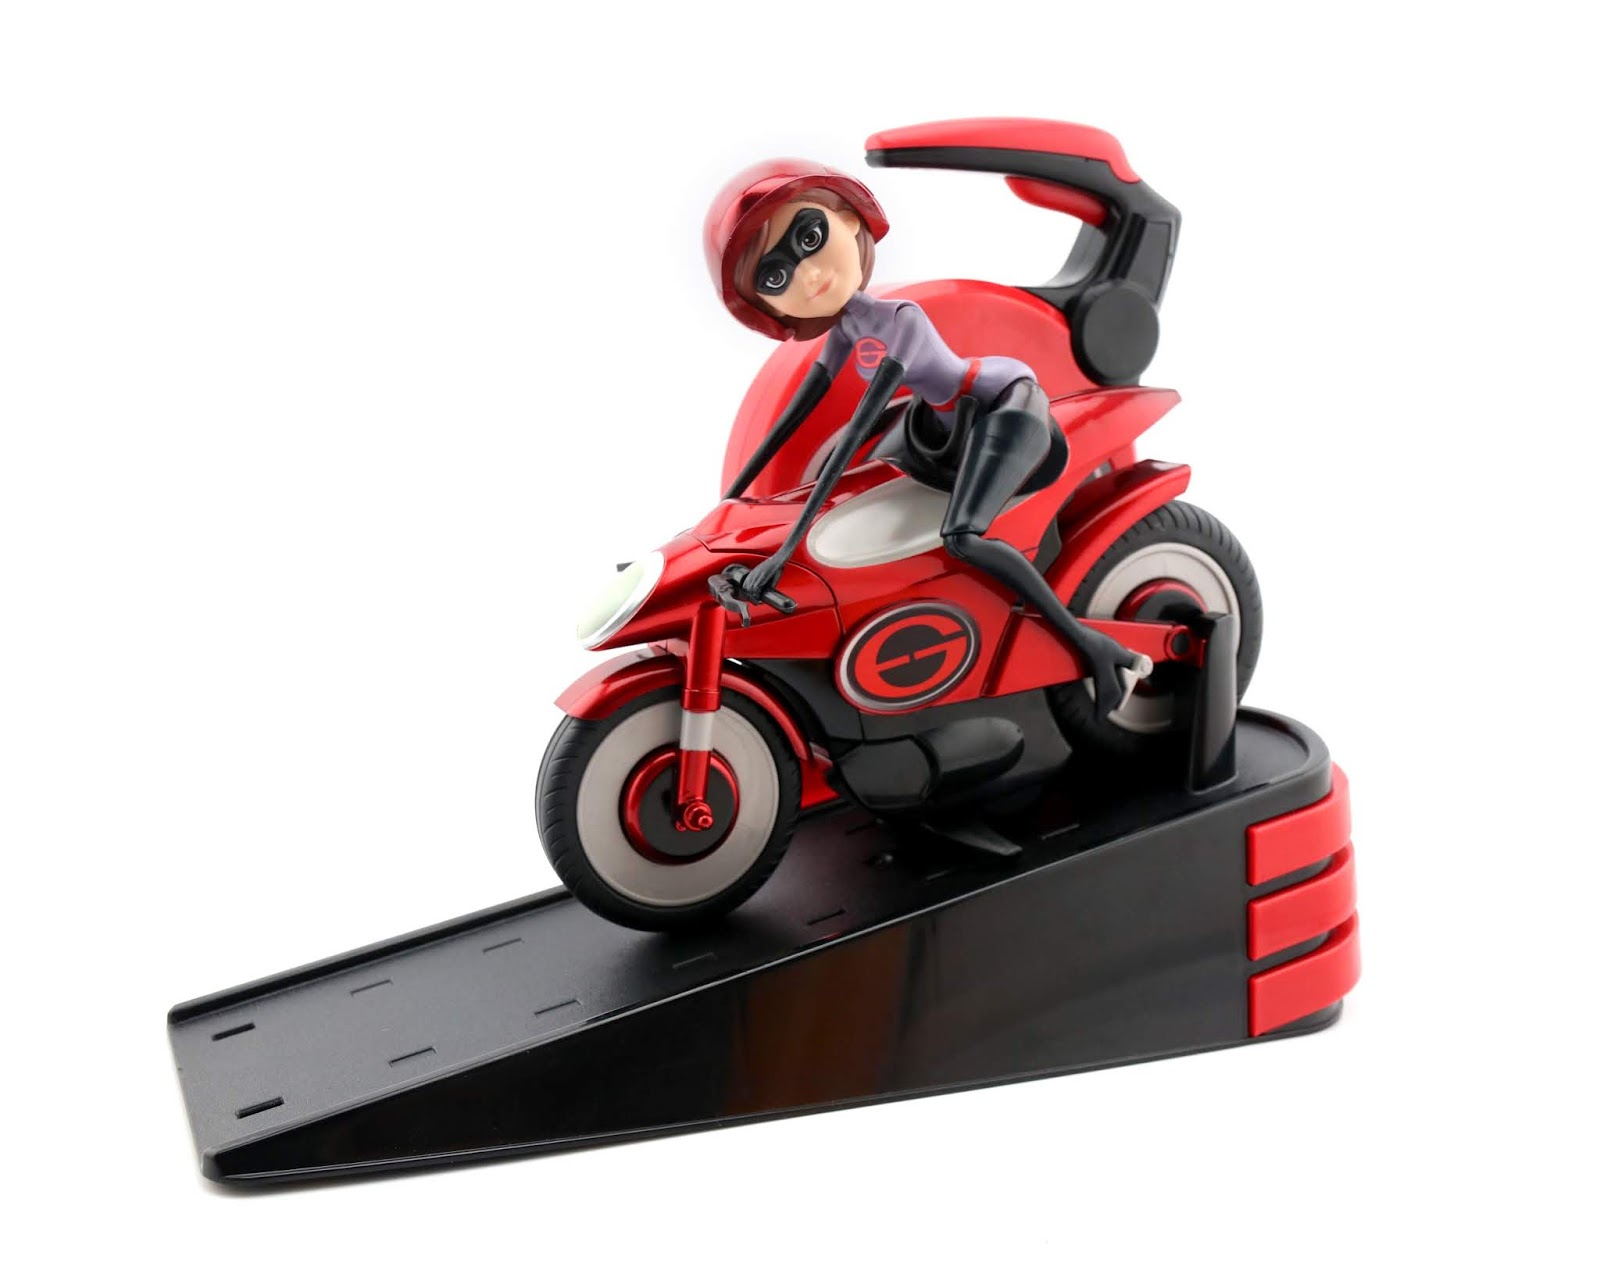 Incredibles 2 Jakks Toys Streching & Speeding Elasticycle Review